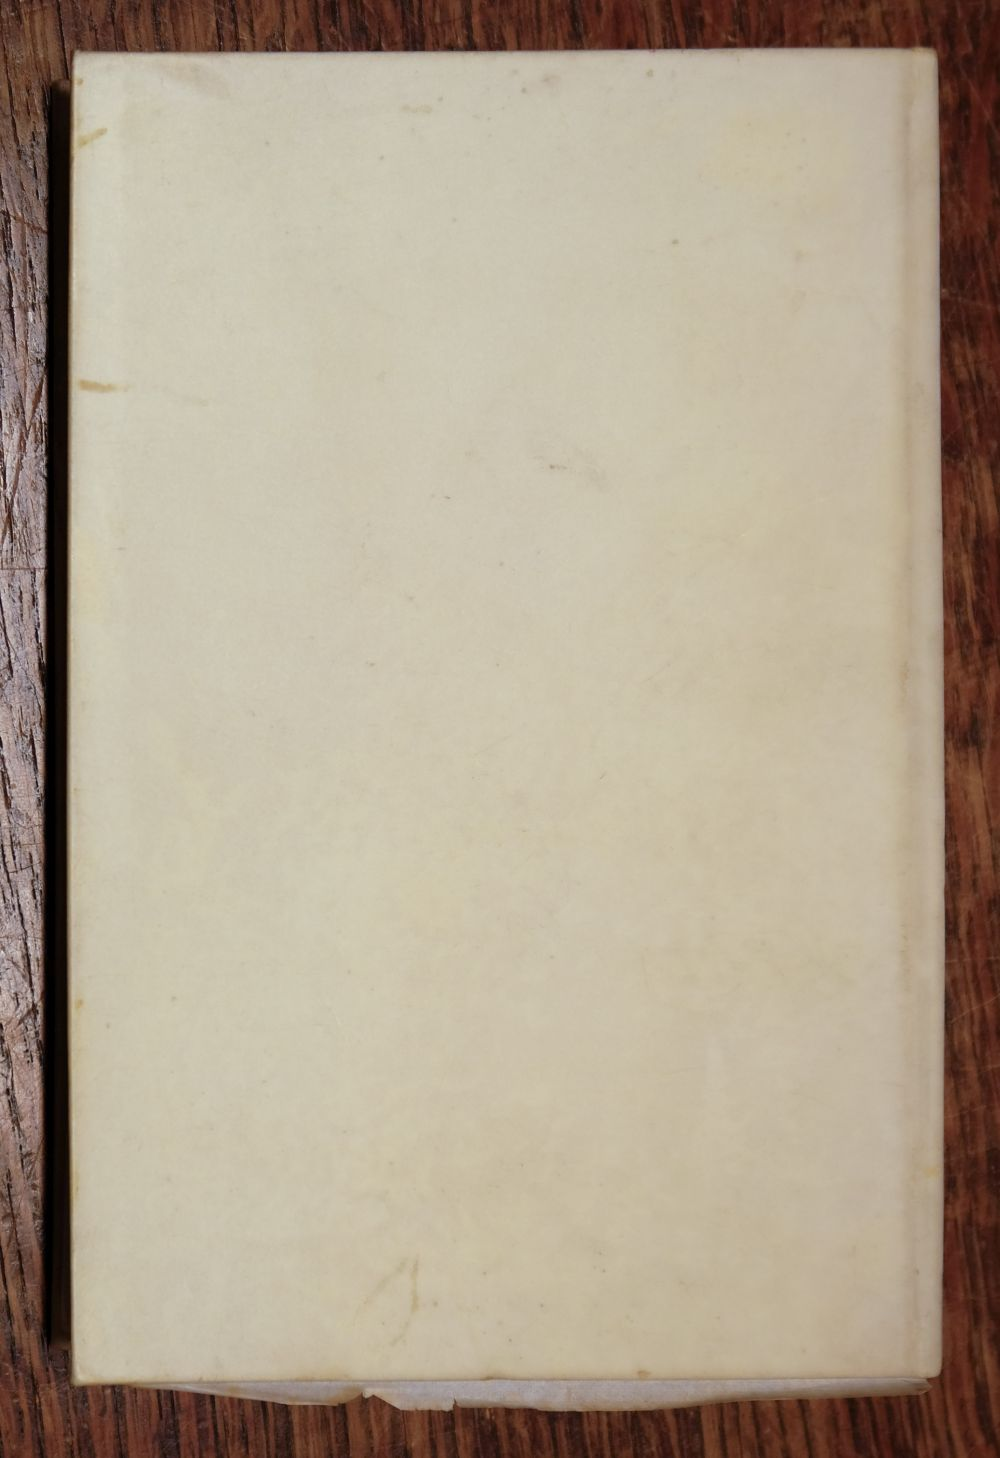 Essex House Press. The Rime of the Ancient Mariner, 1903 - Image 4 of 6